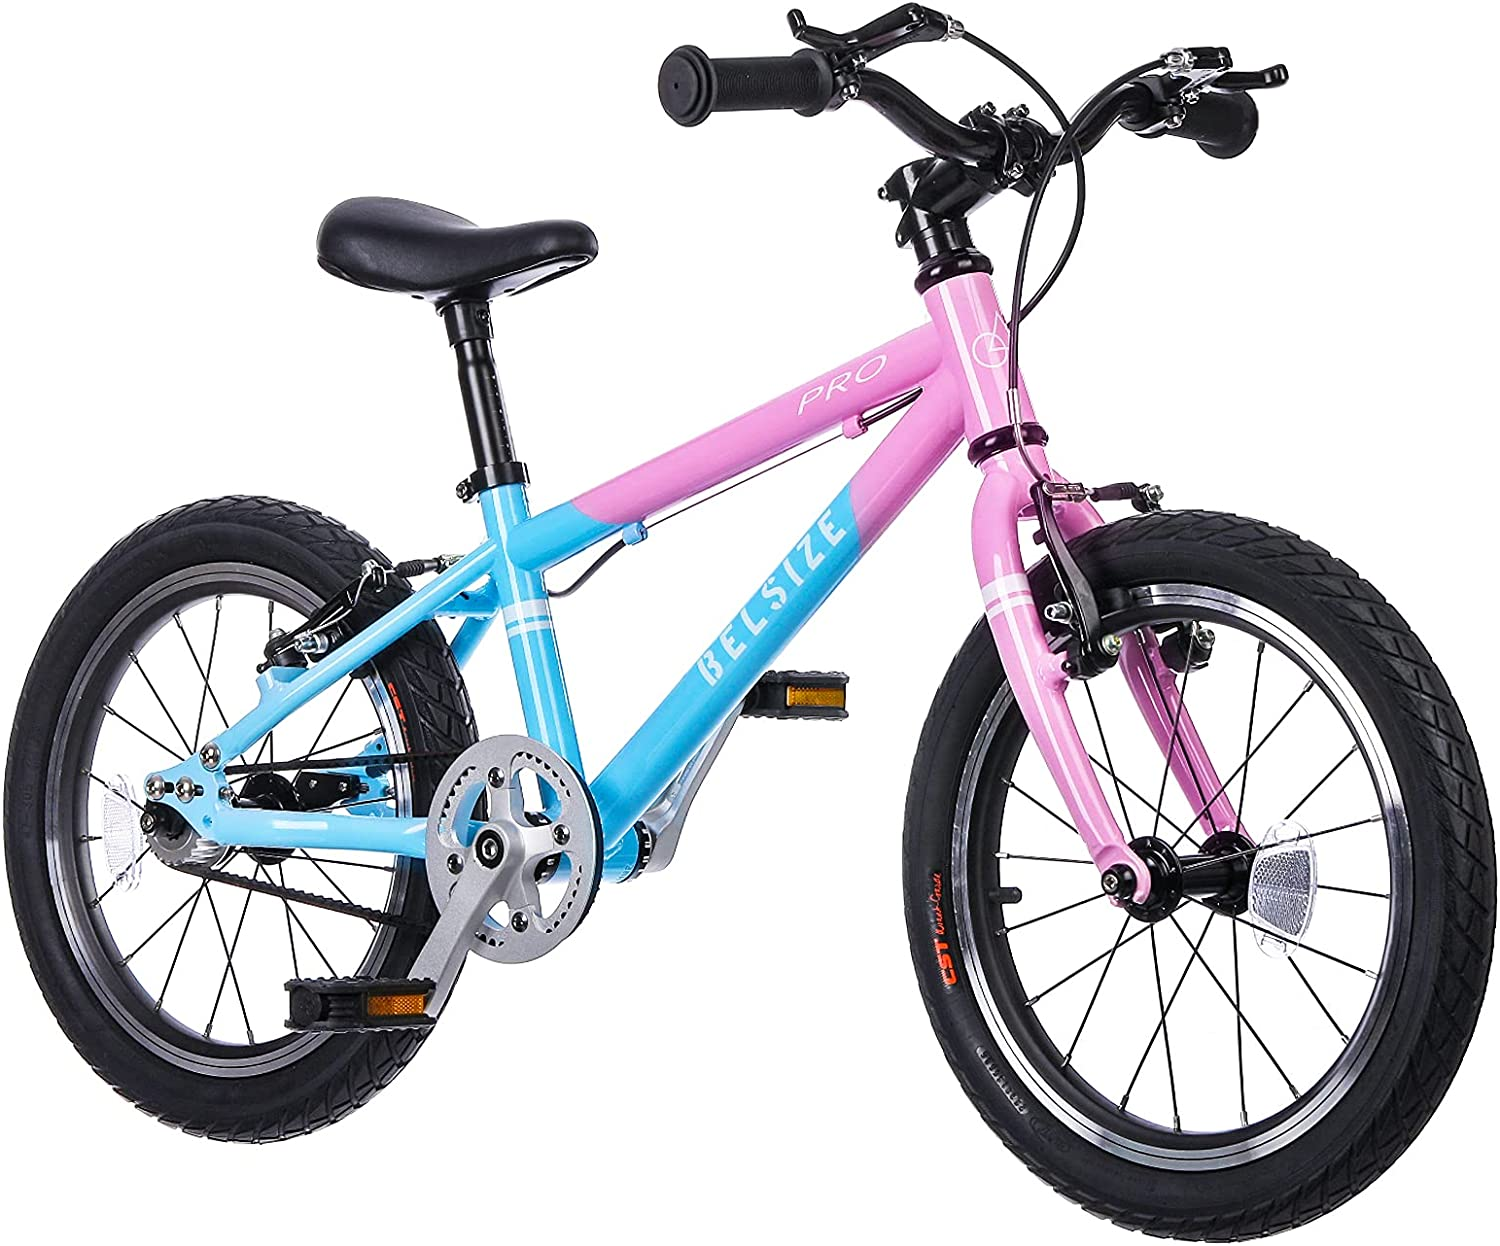 BELSIZE 16-Inch PRO Belt-Drive Kid's Bike, Lightweight Aluminium Alloy Bicycle(only 13 lbs) for 3-7 Years Old